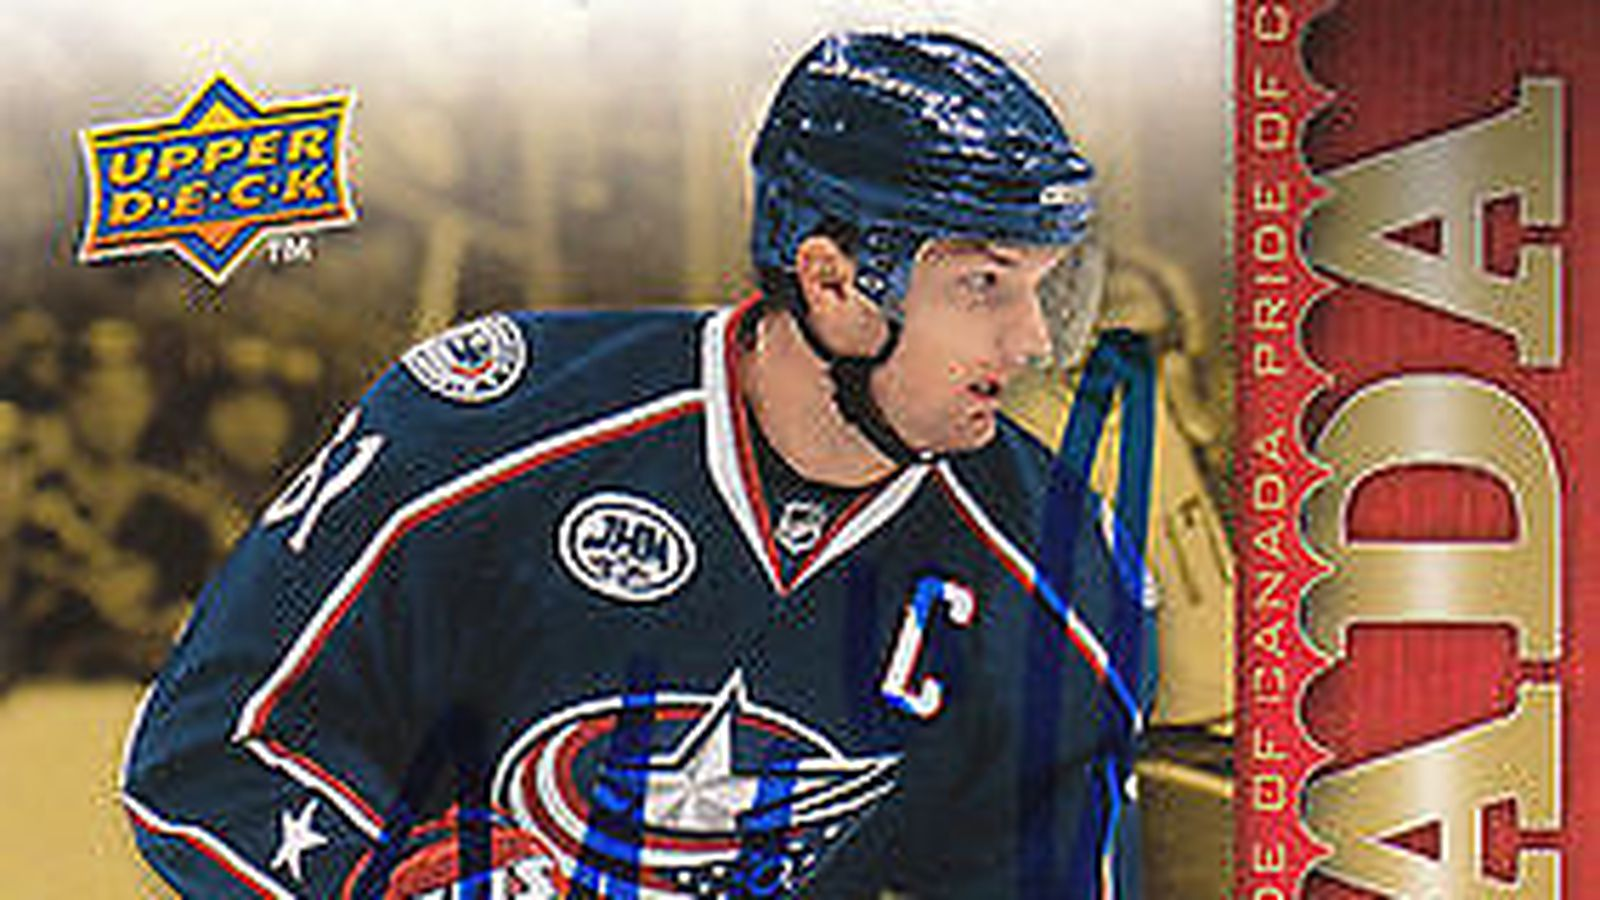 Rick_nash_blue_jackets_autograph_auto_2010_ud_national_hockey_card_day_10_17575_661ea6742e57e3449bd74c6f51e27214.0